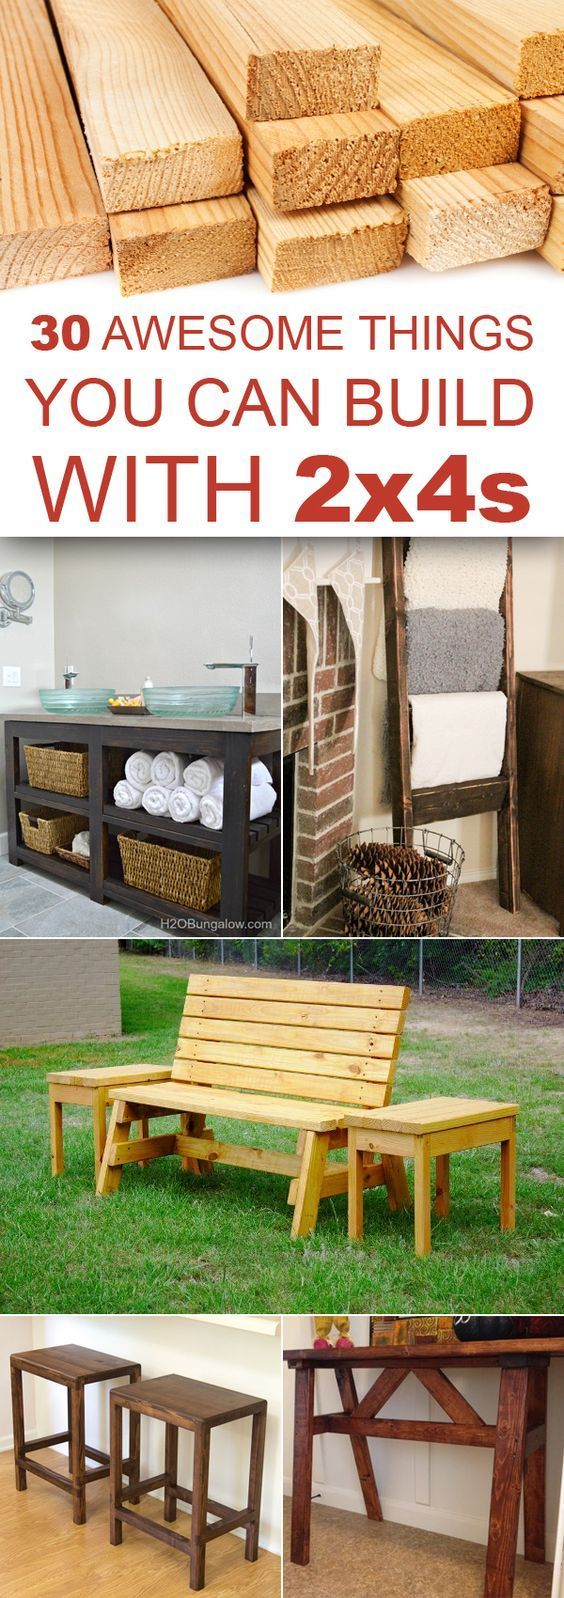 Homemade outdoor furniture ideas - 30 Awesome Things You Can Build With 2x4s Woodworking Furniturewoodworking Craftseasy Woodworking Ideassmall